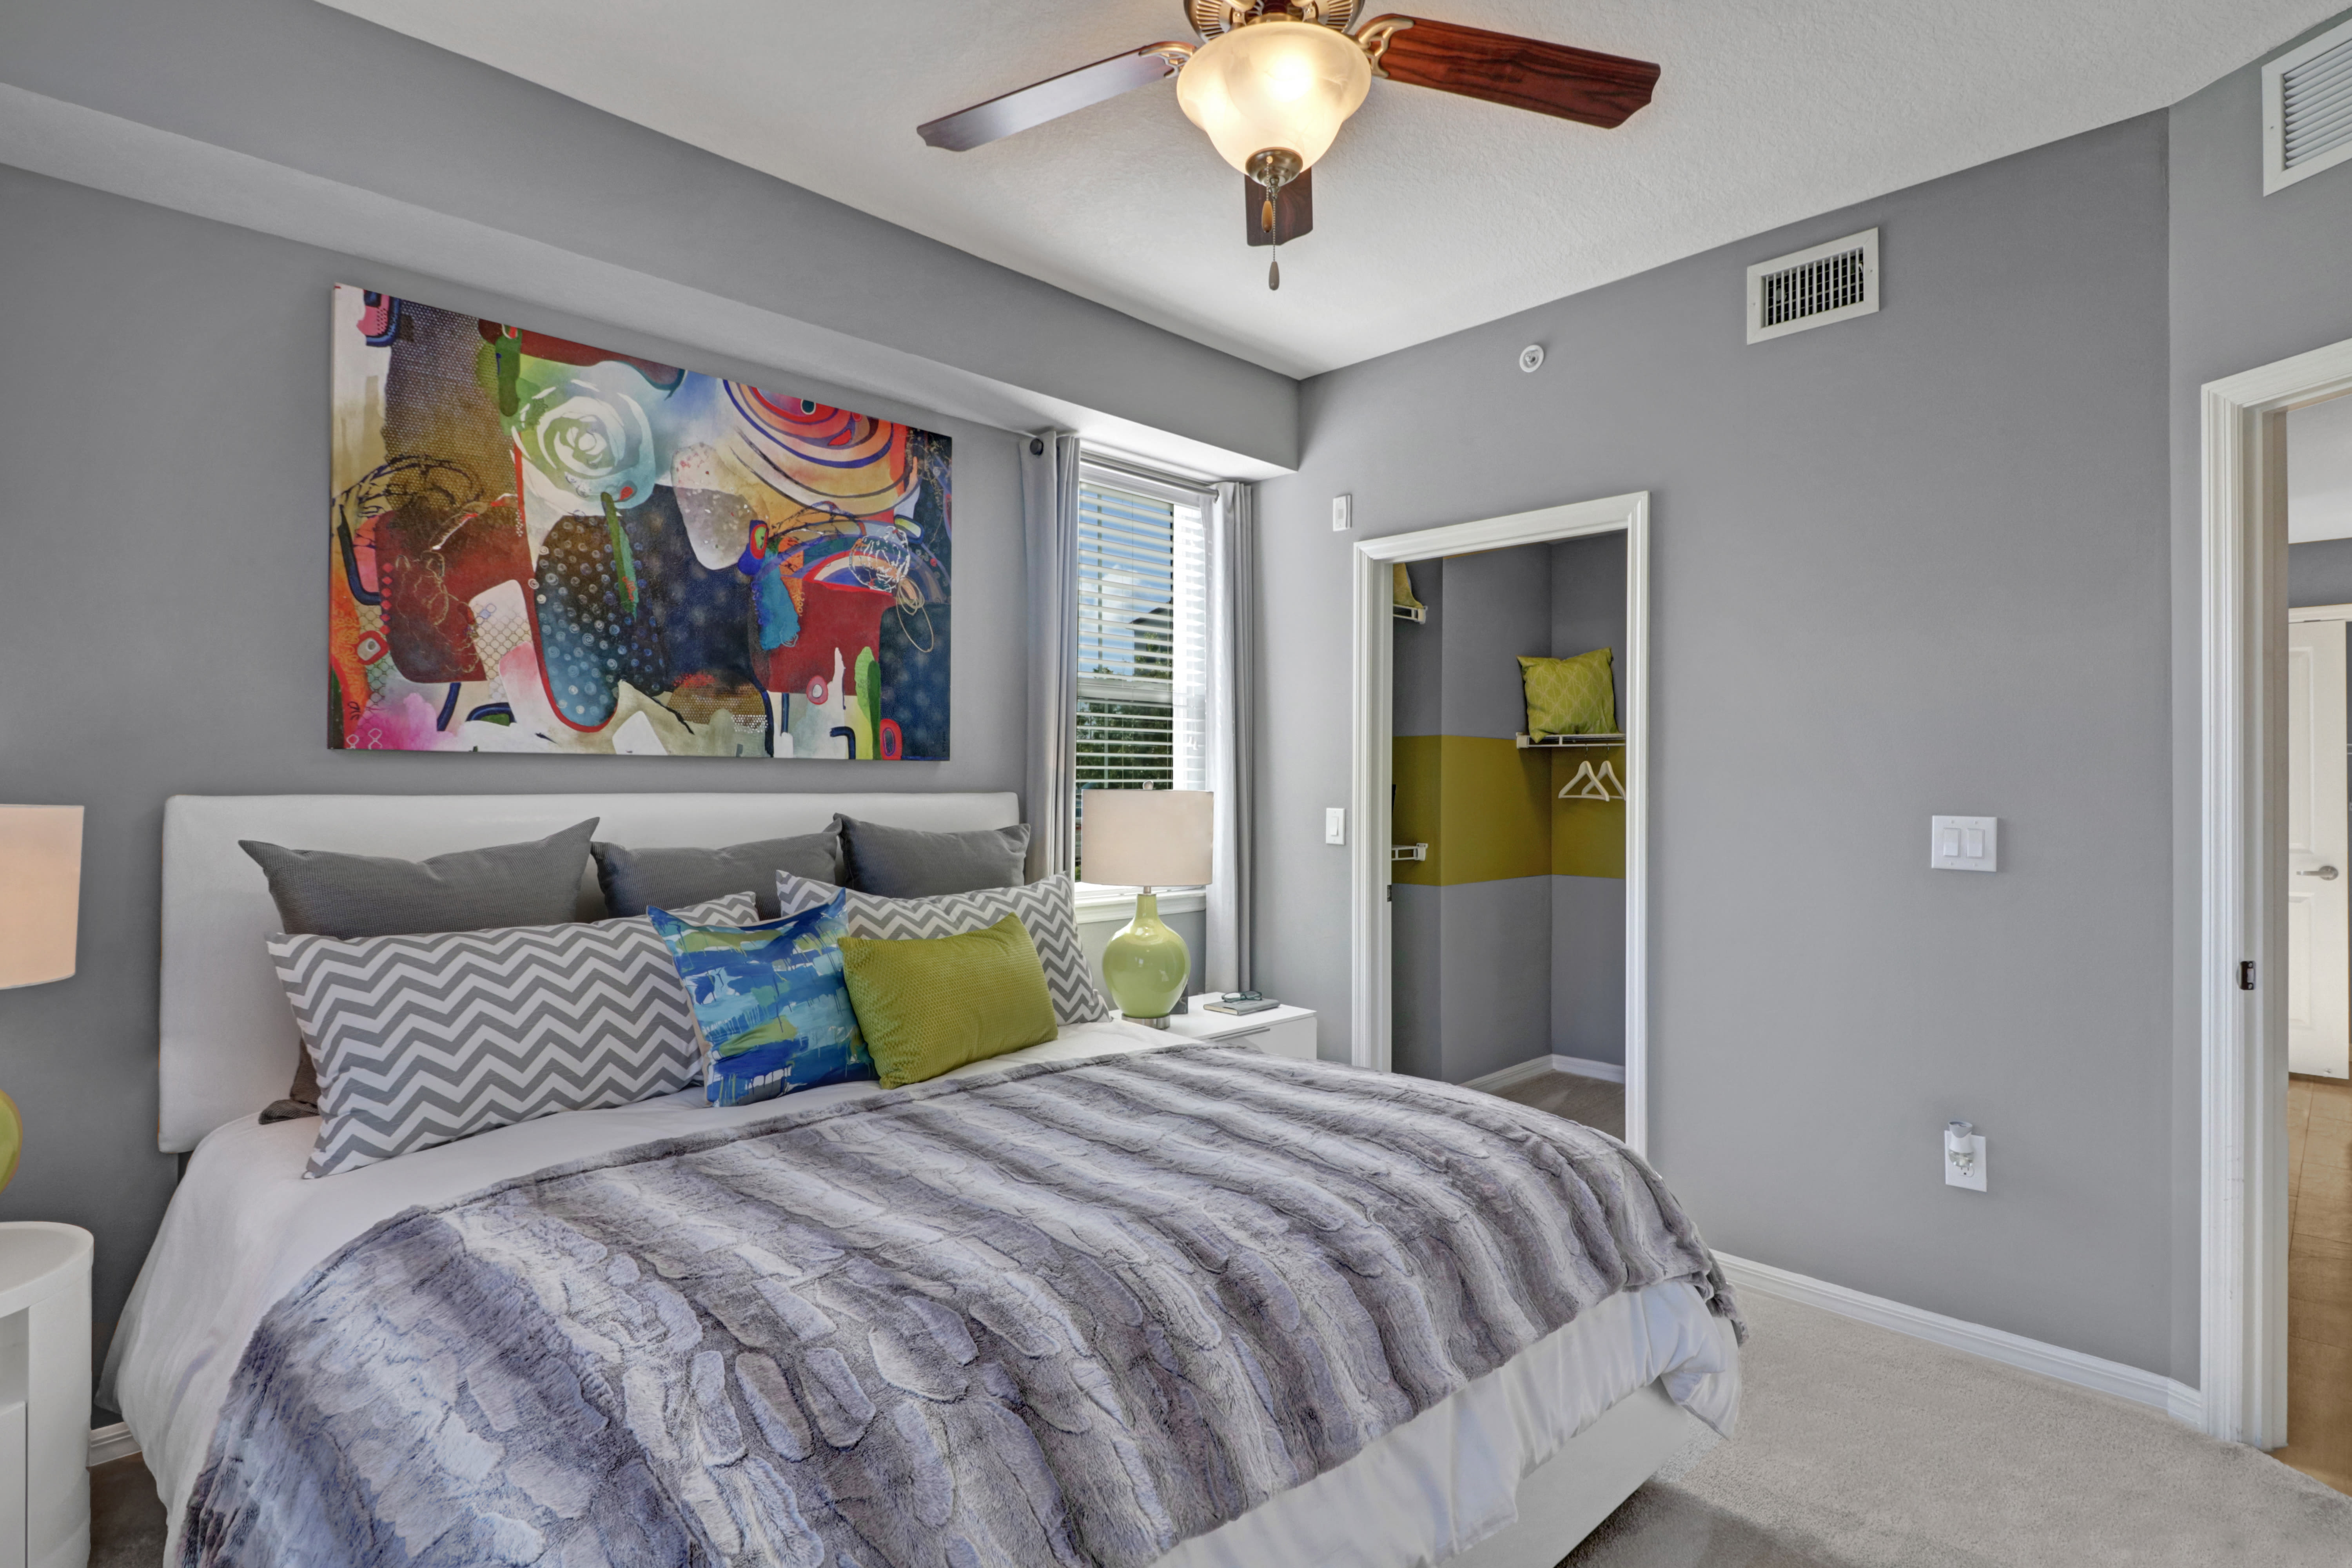 Our Modern Apartments in Pompano Beach, Florida showcase a Bedroom